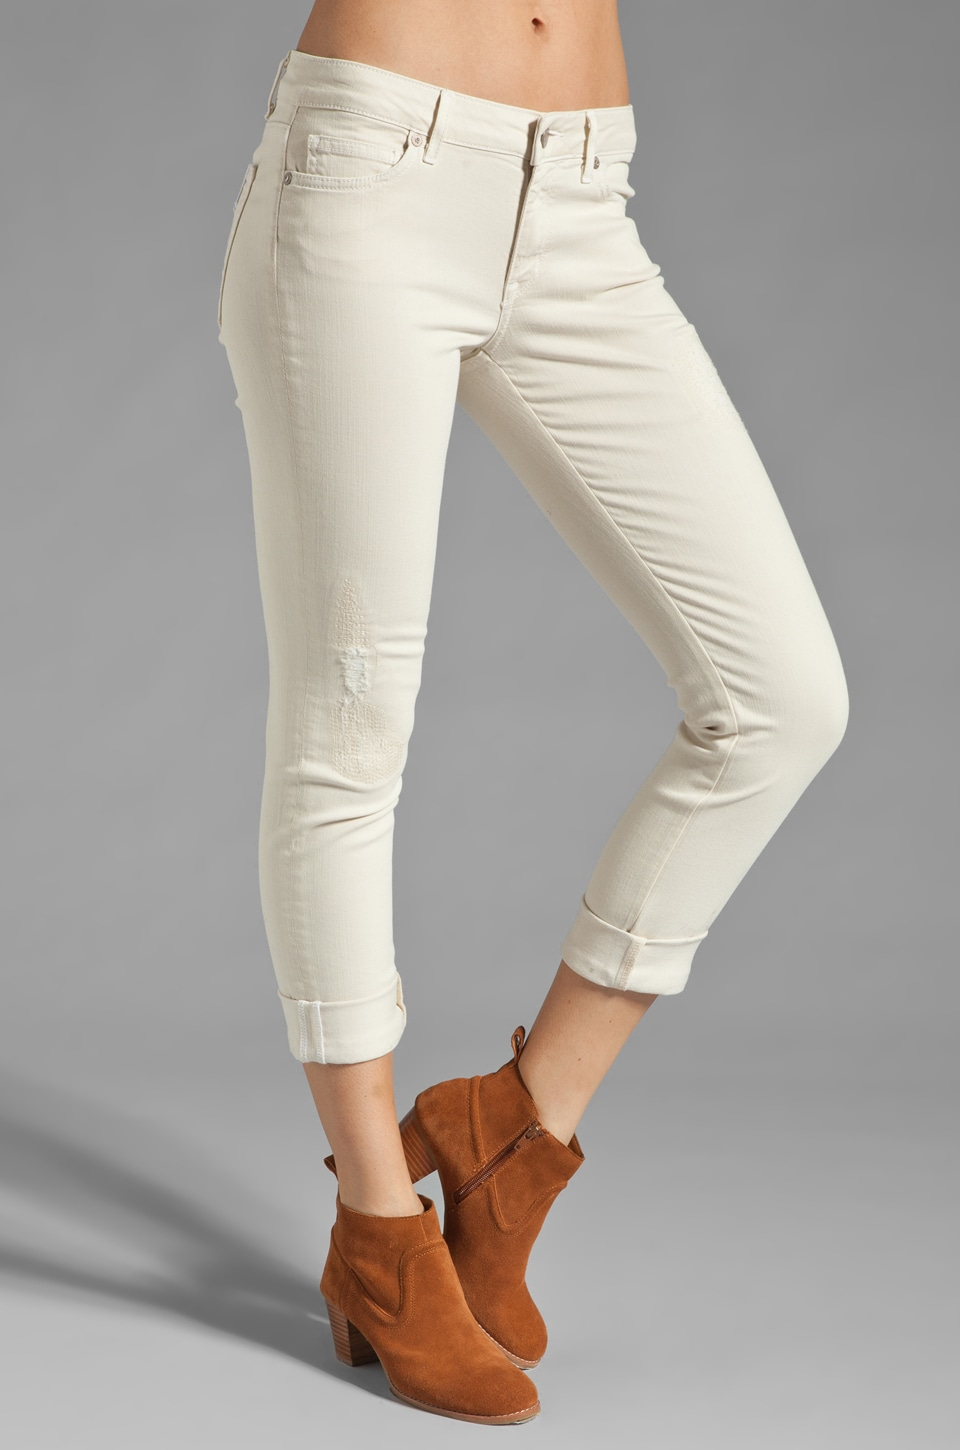 Rich & Skinny The Ankle Roll Crop in Vale